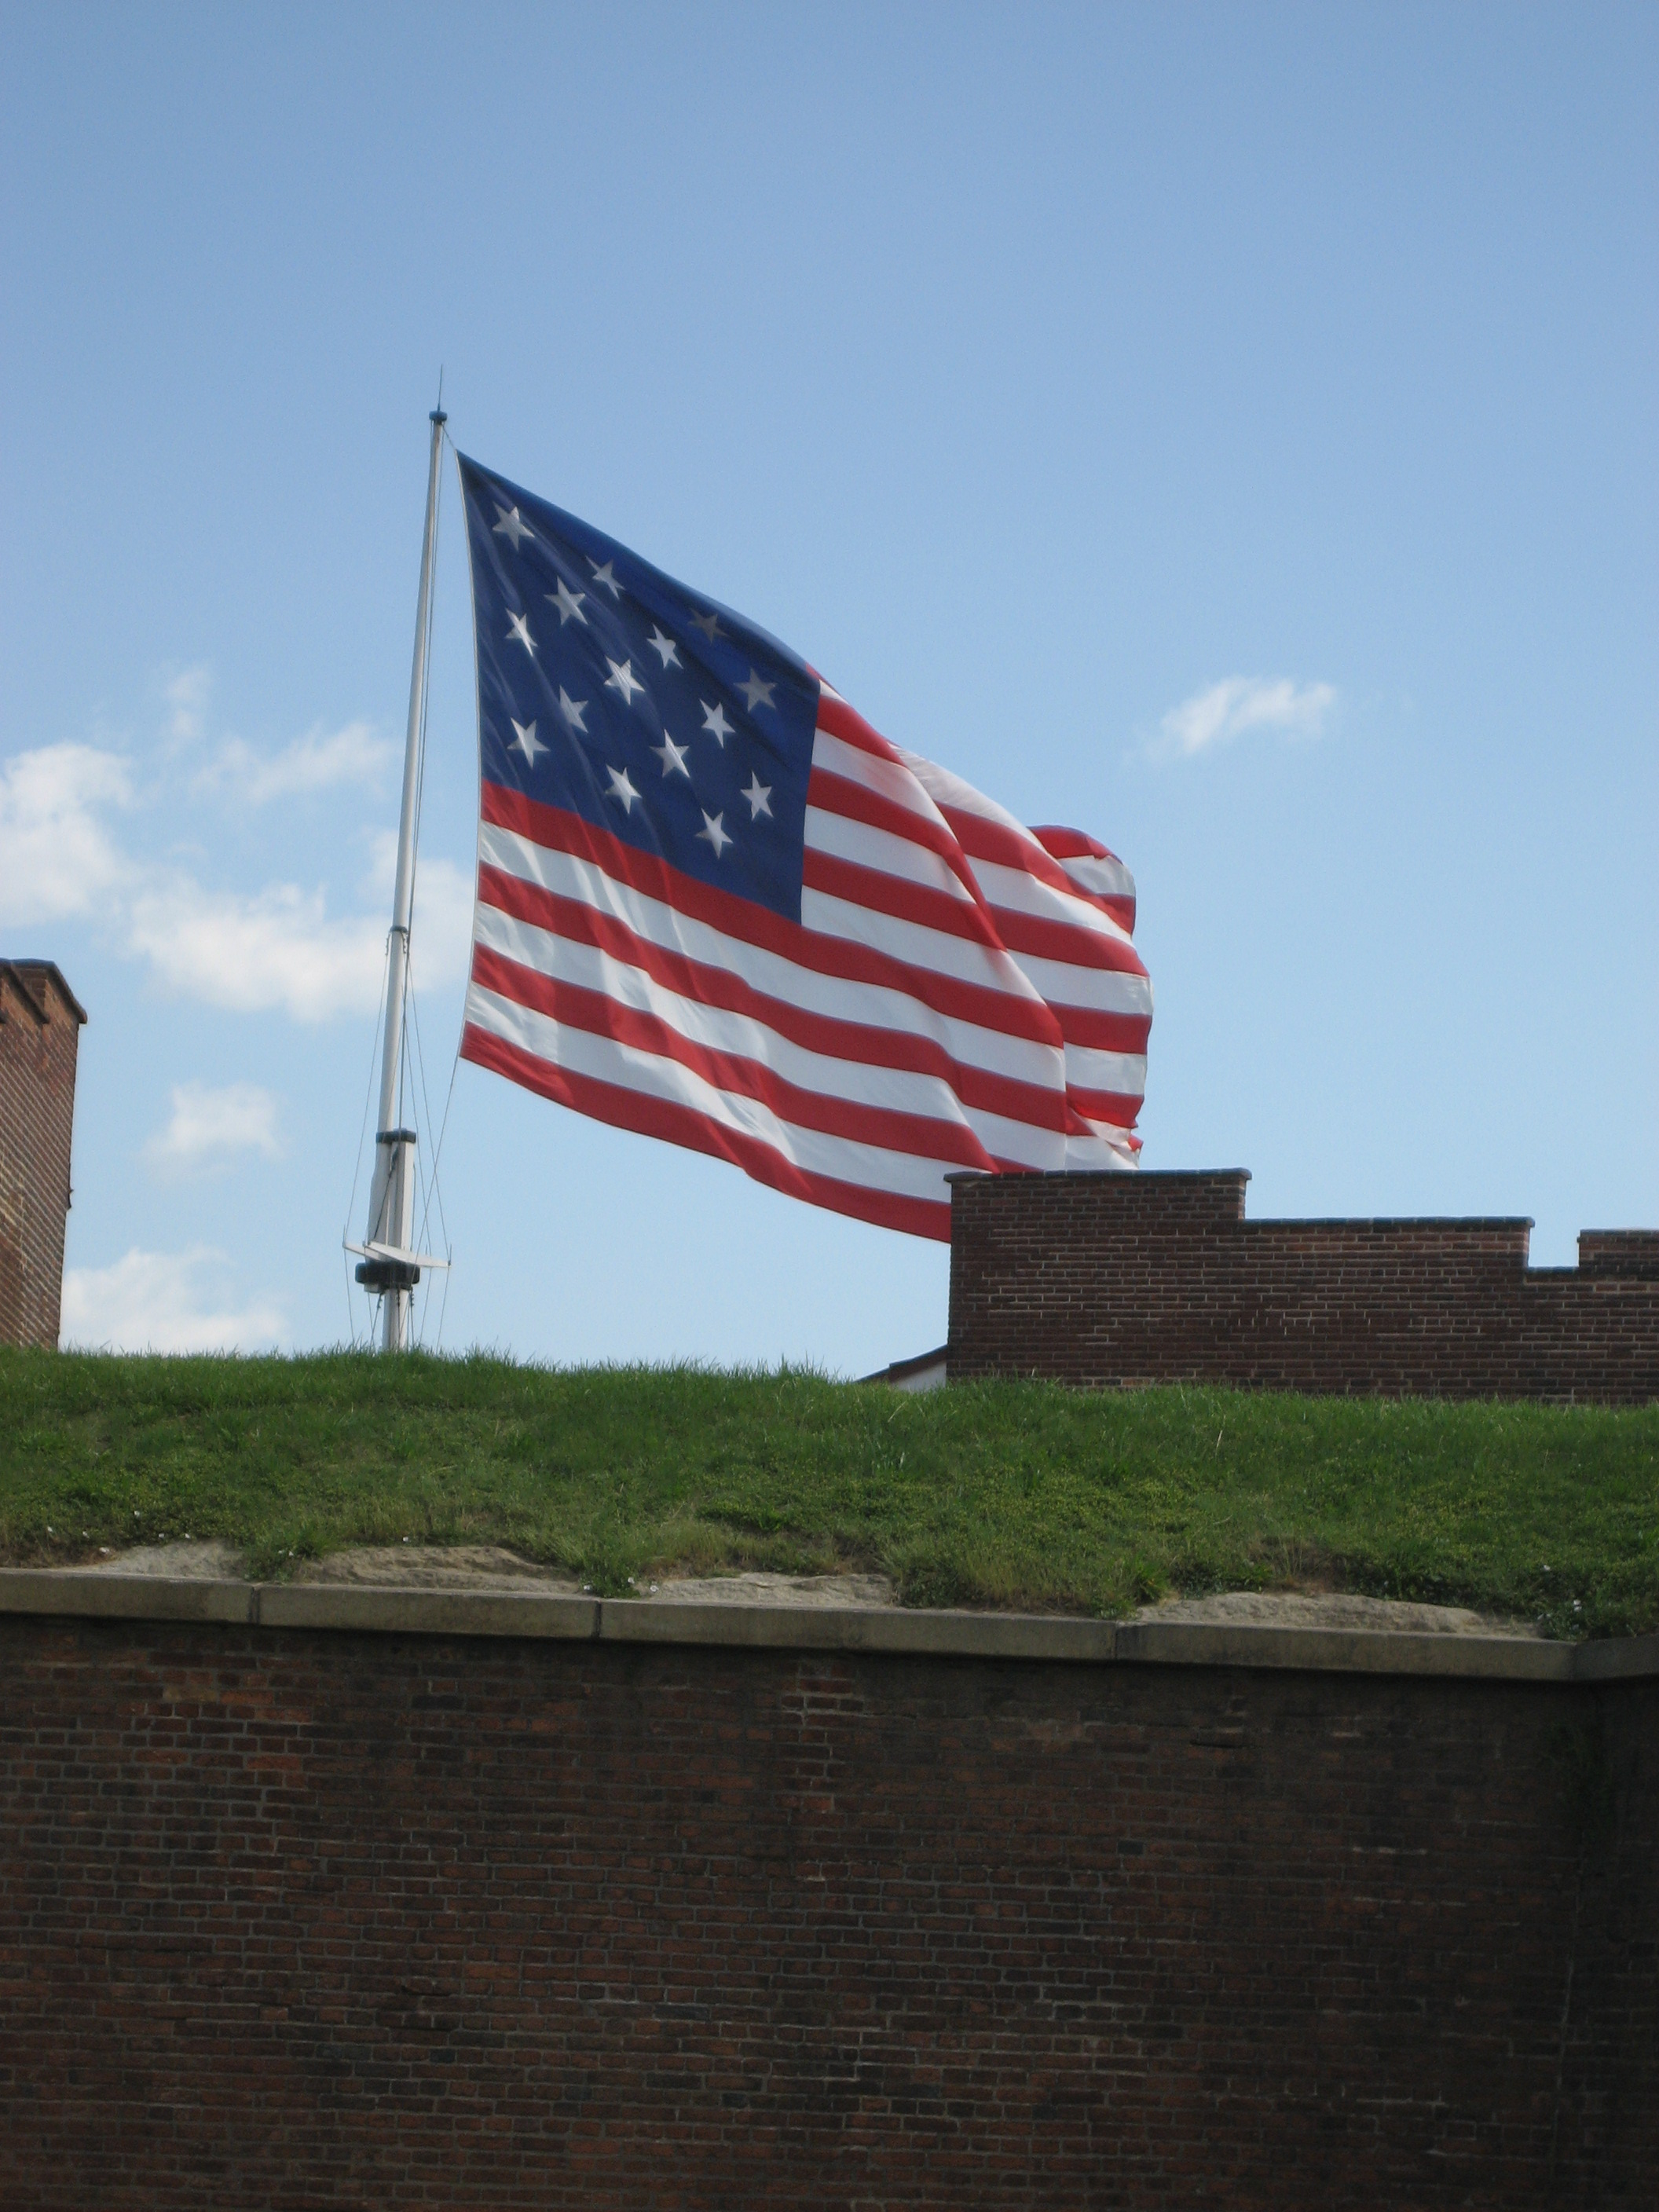 Ft. McHenry, Baltimore (2008)